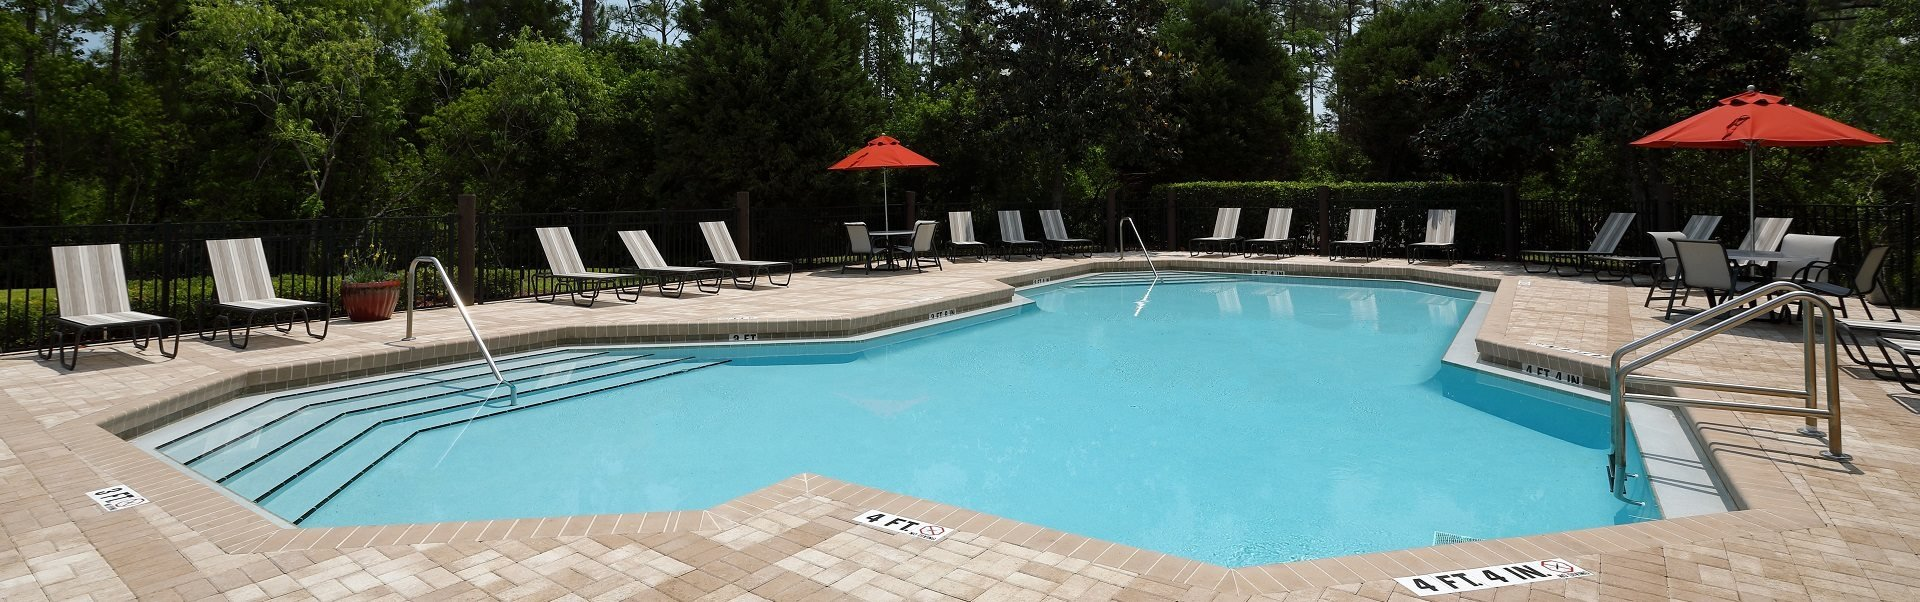 Swimming Pool with Lounge Seating, shaded picnic tables, surrounded by native landscaping